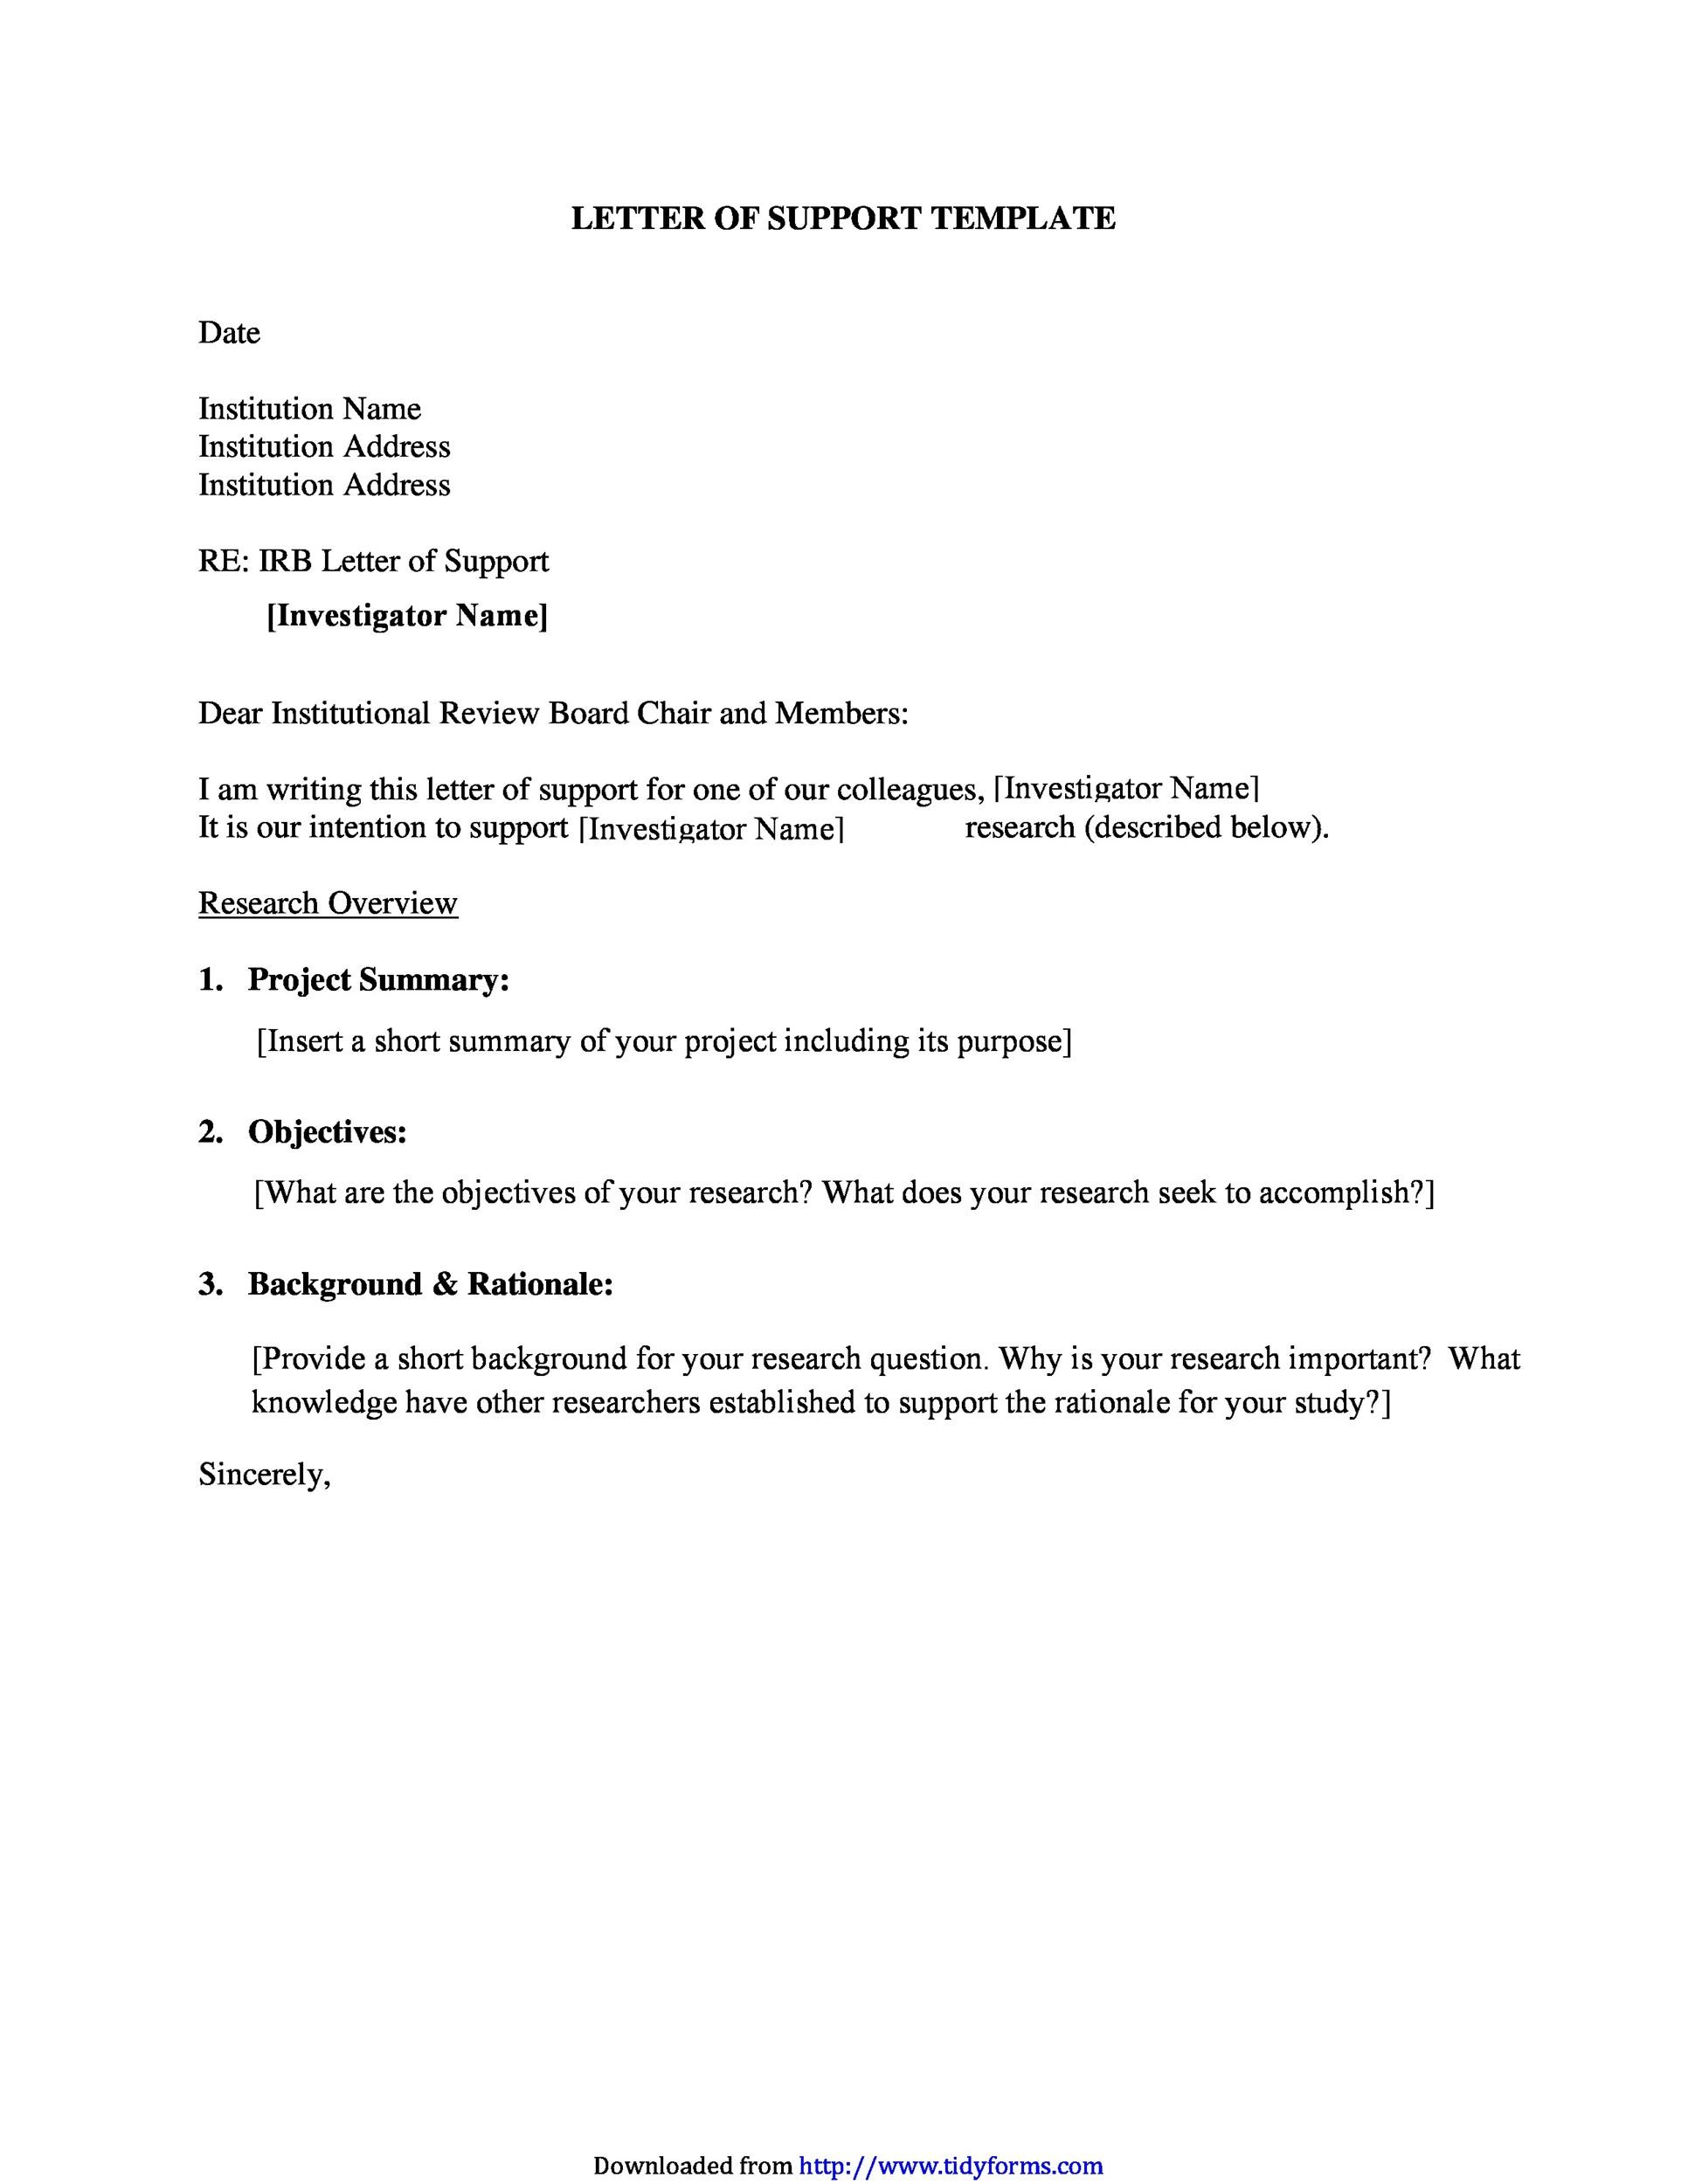 writing a letter of support 40  Proven Letter of Support Templates [Financial, for Grant...]